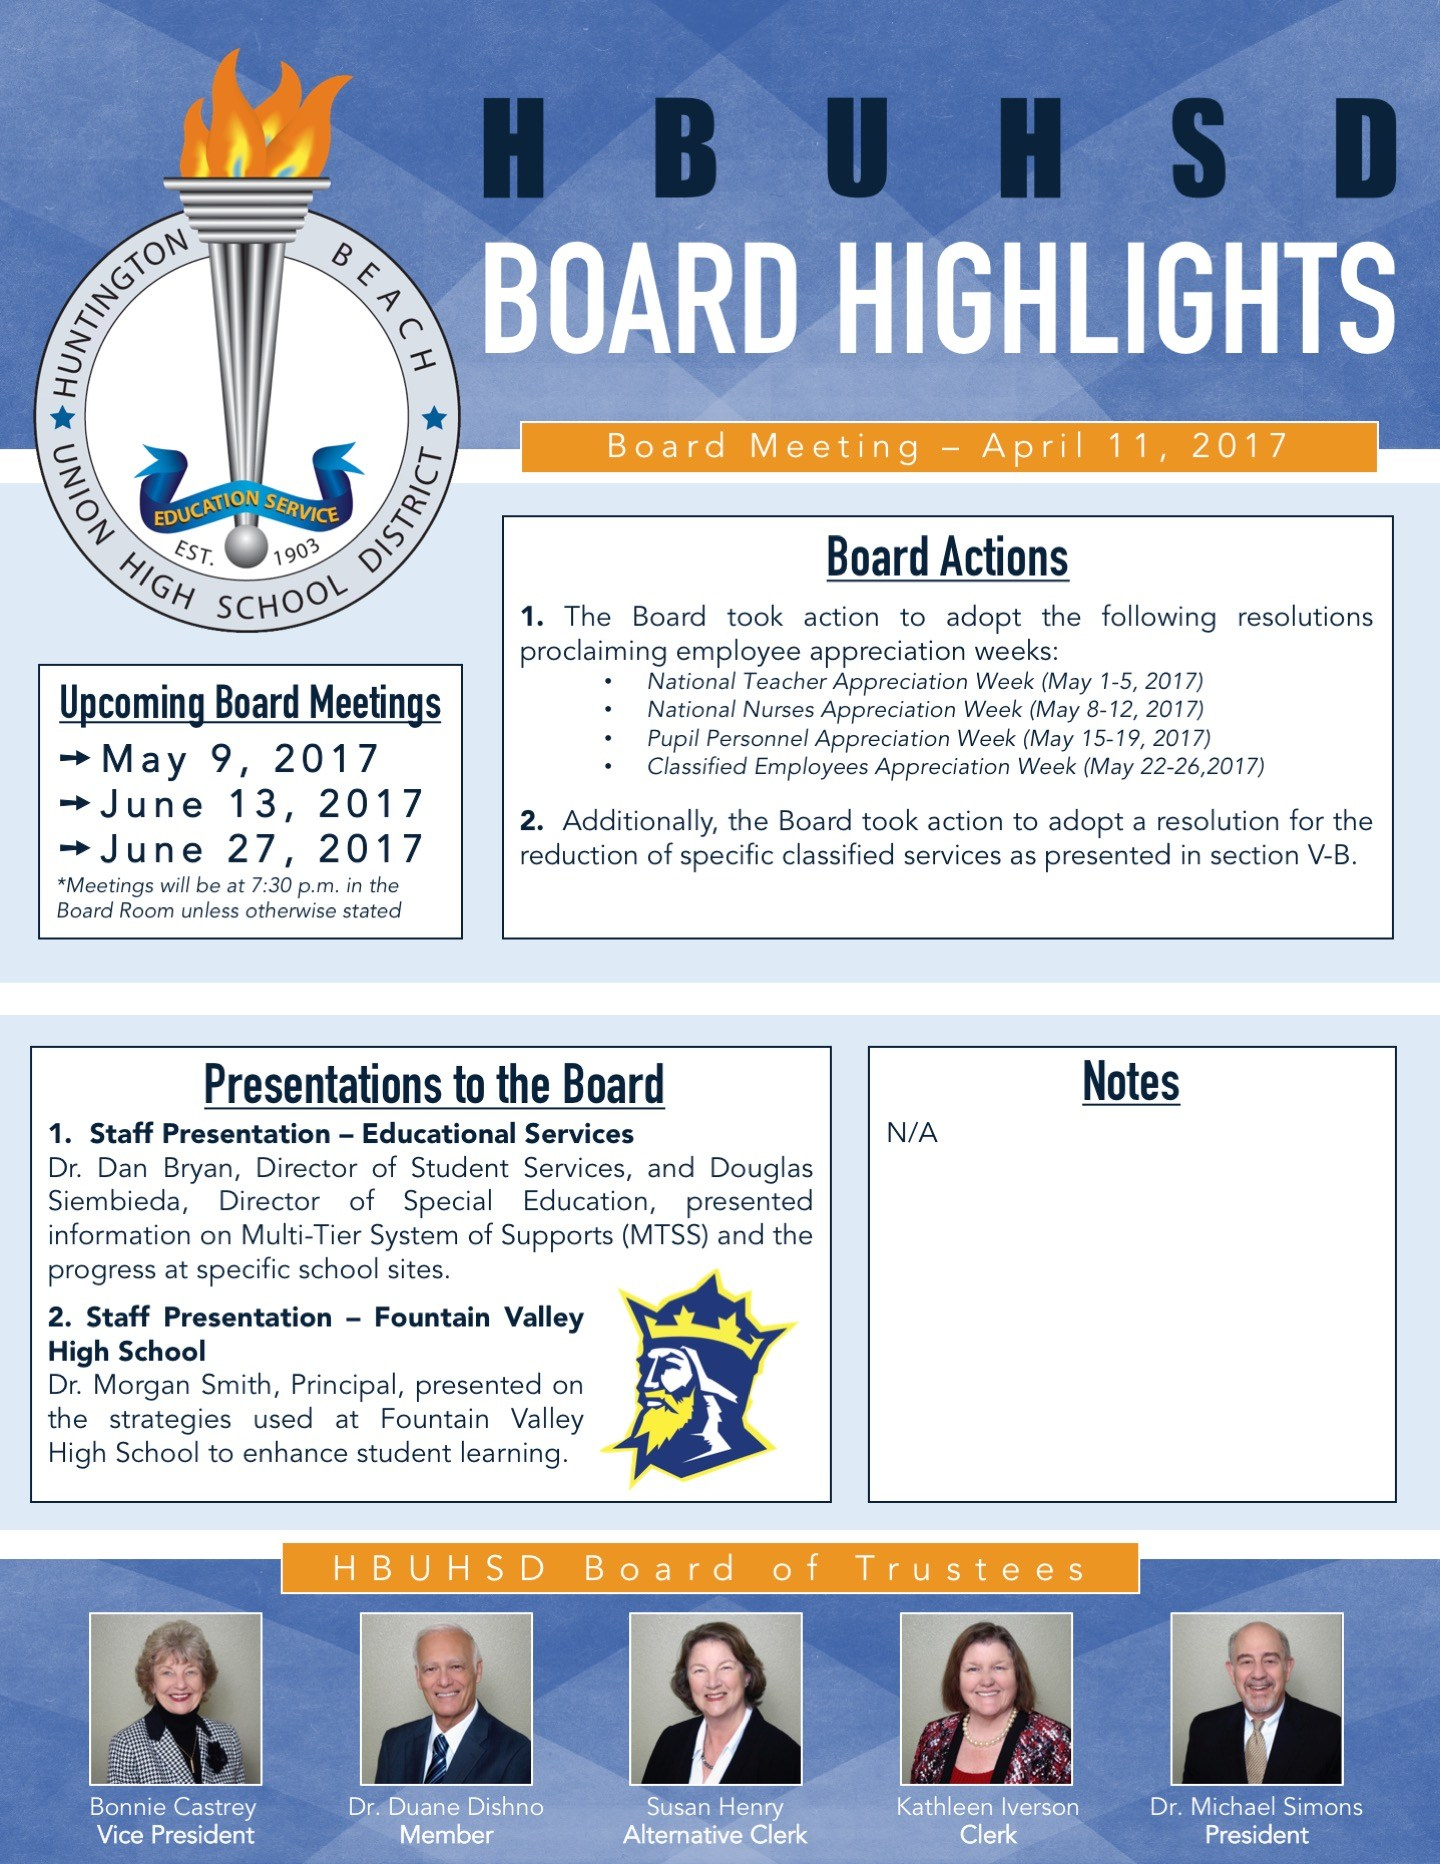 Board Highlights from the April 11, 2017 Board of Trustees meeting.